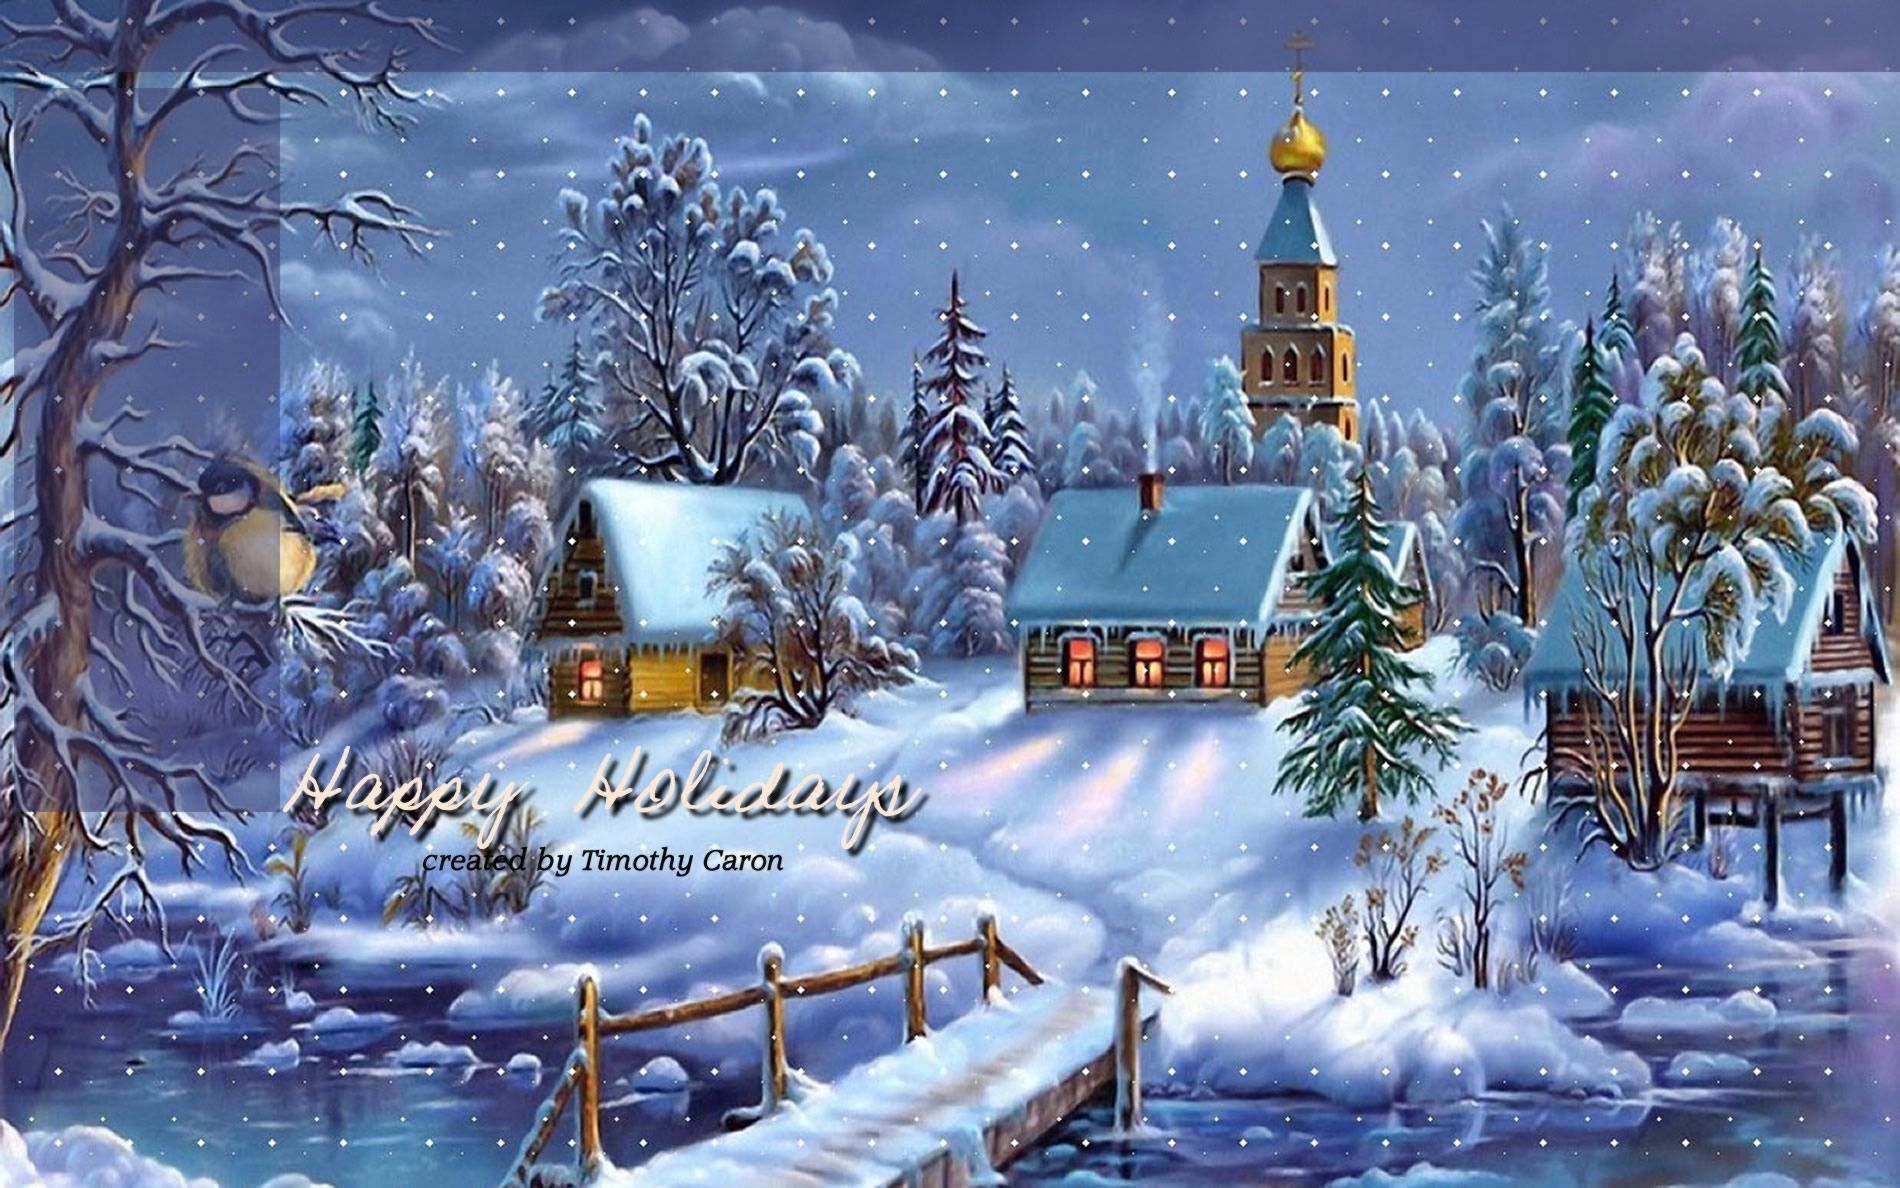 Holiday Screensavers And Wallpapers Wallpaper 1920 1200 Holiday Wallpapers Free 54 Wallpapers Adorable Christmas Scenes Christmas Pictures Christmas Art